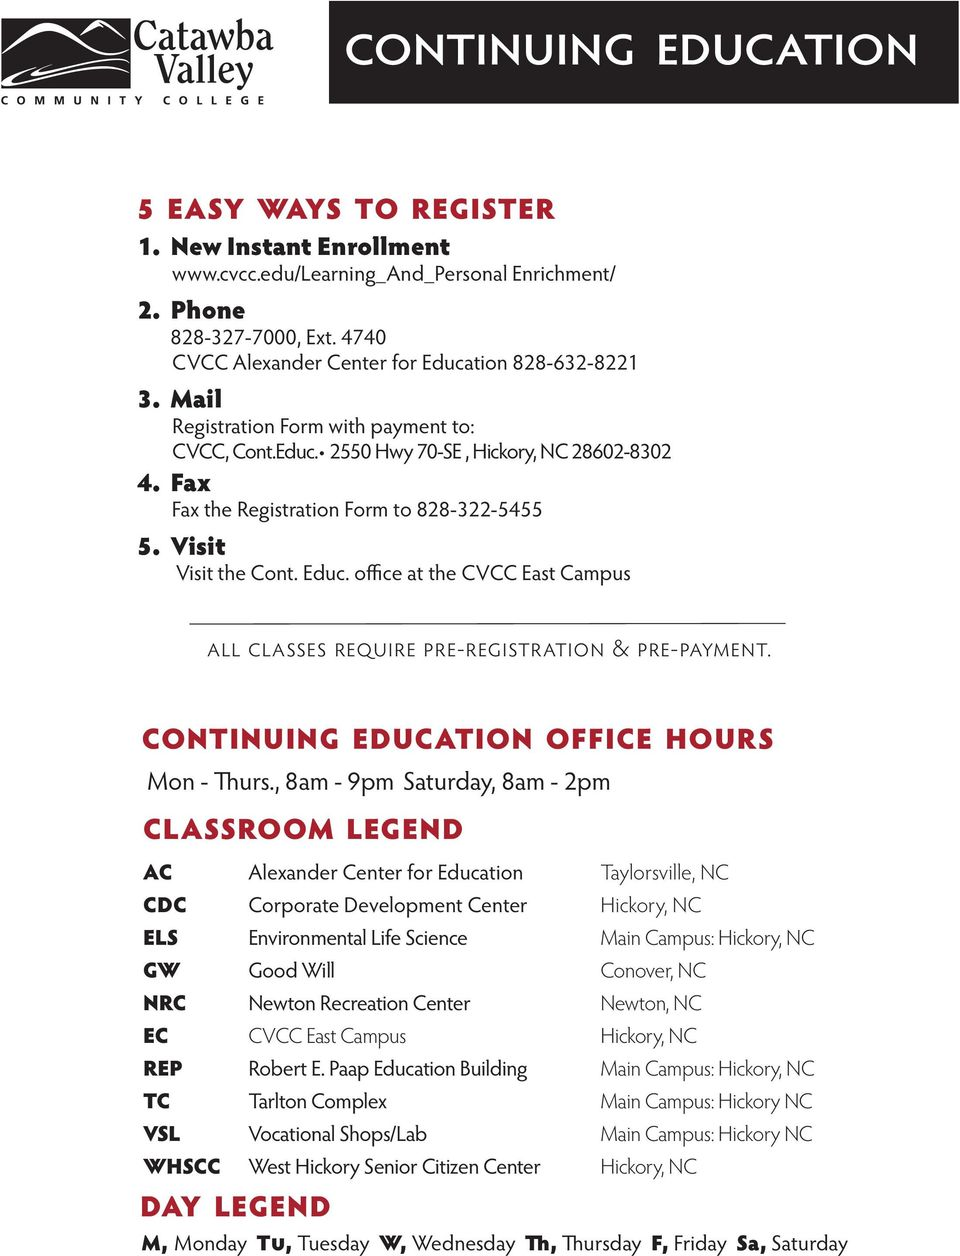 Fax Fax the Registration Form to 828-322-5455 5. Visit Visit the Cont. Educ. office at the CVCC East Campus all classes require pre-registration & pre-payment.